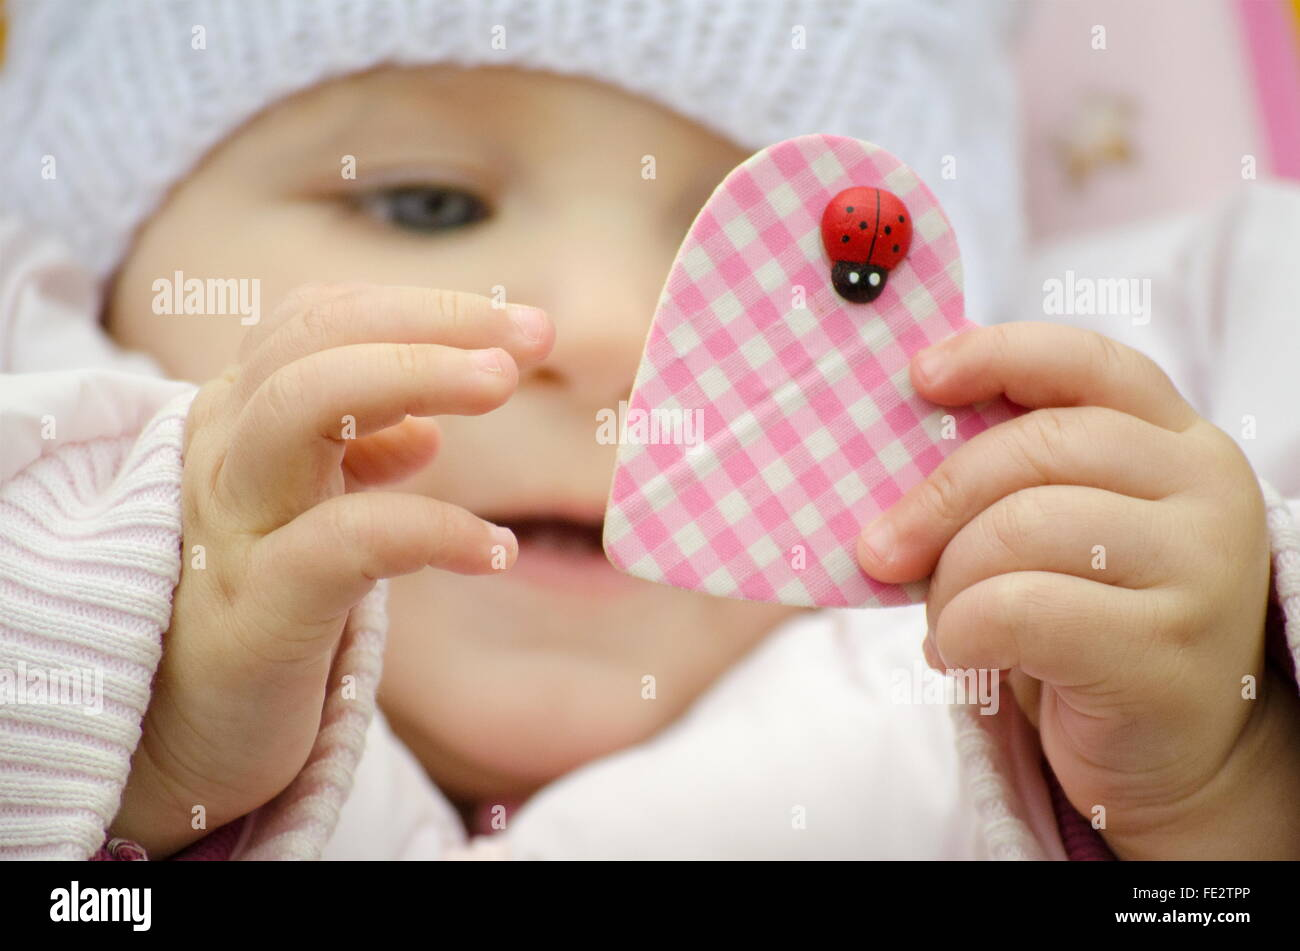 baby wearing a hat holding a heart - Stock Image